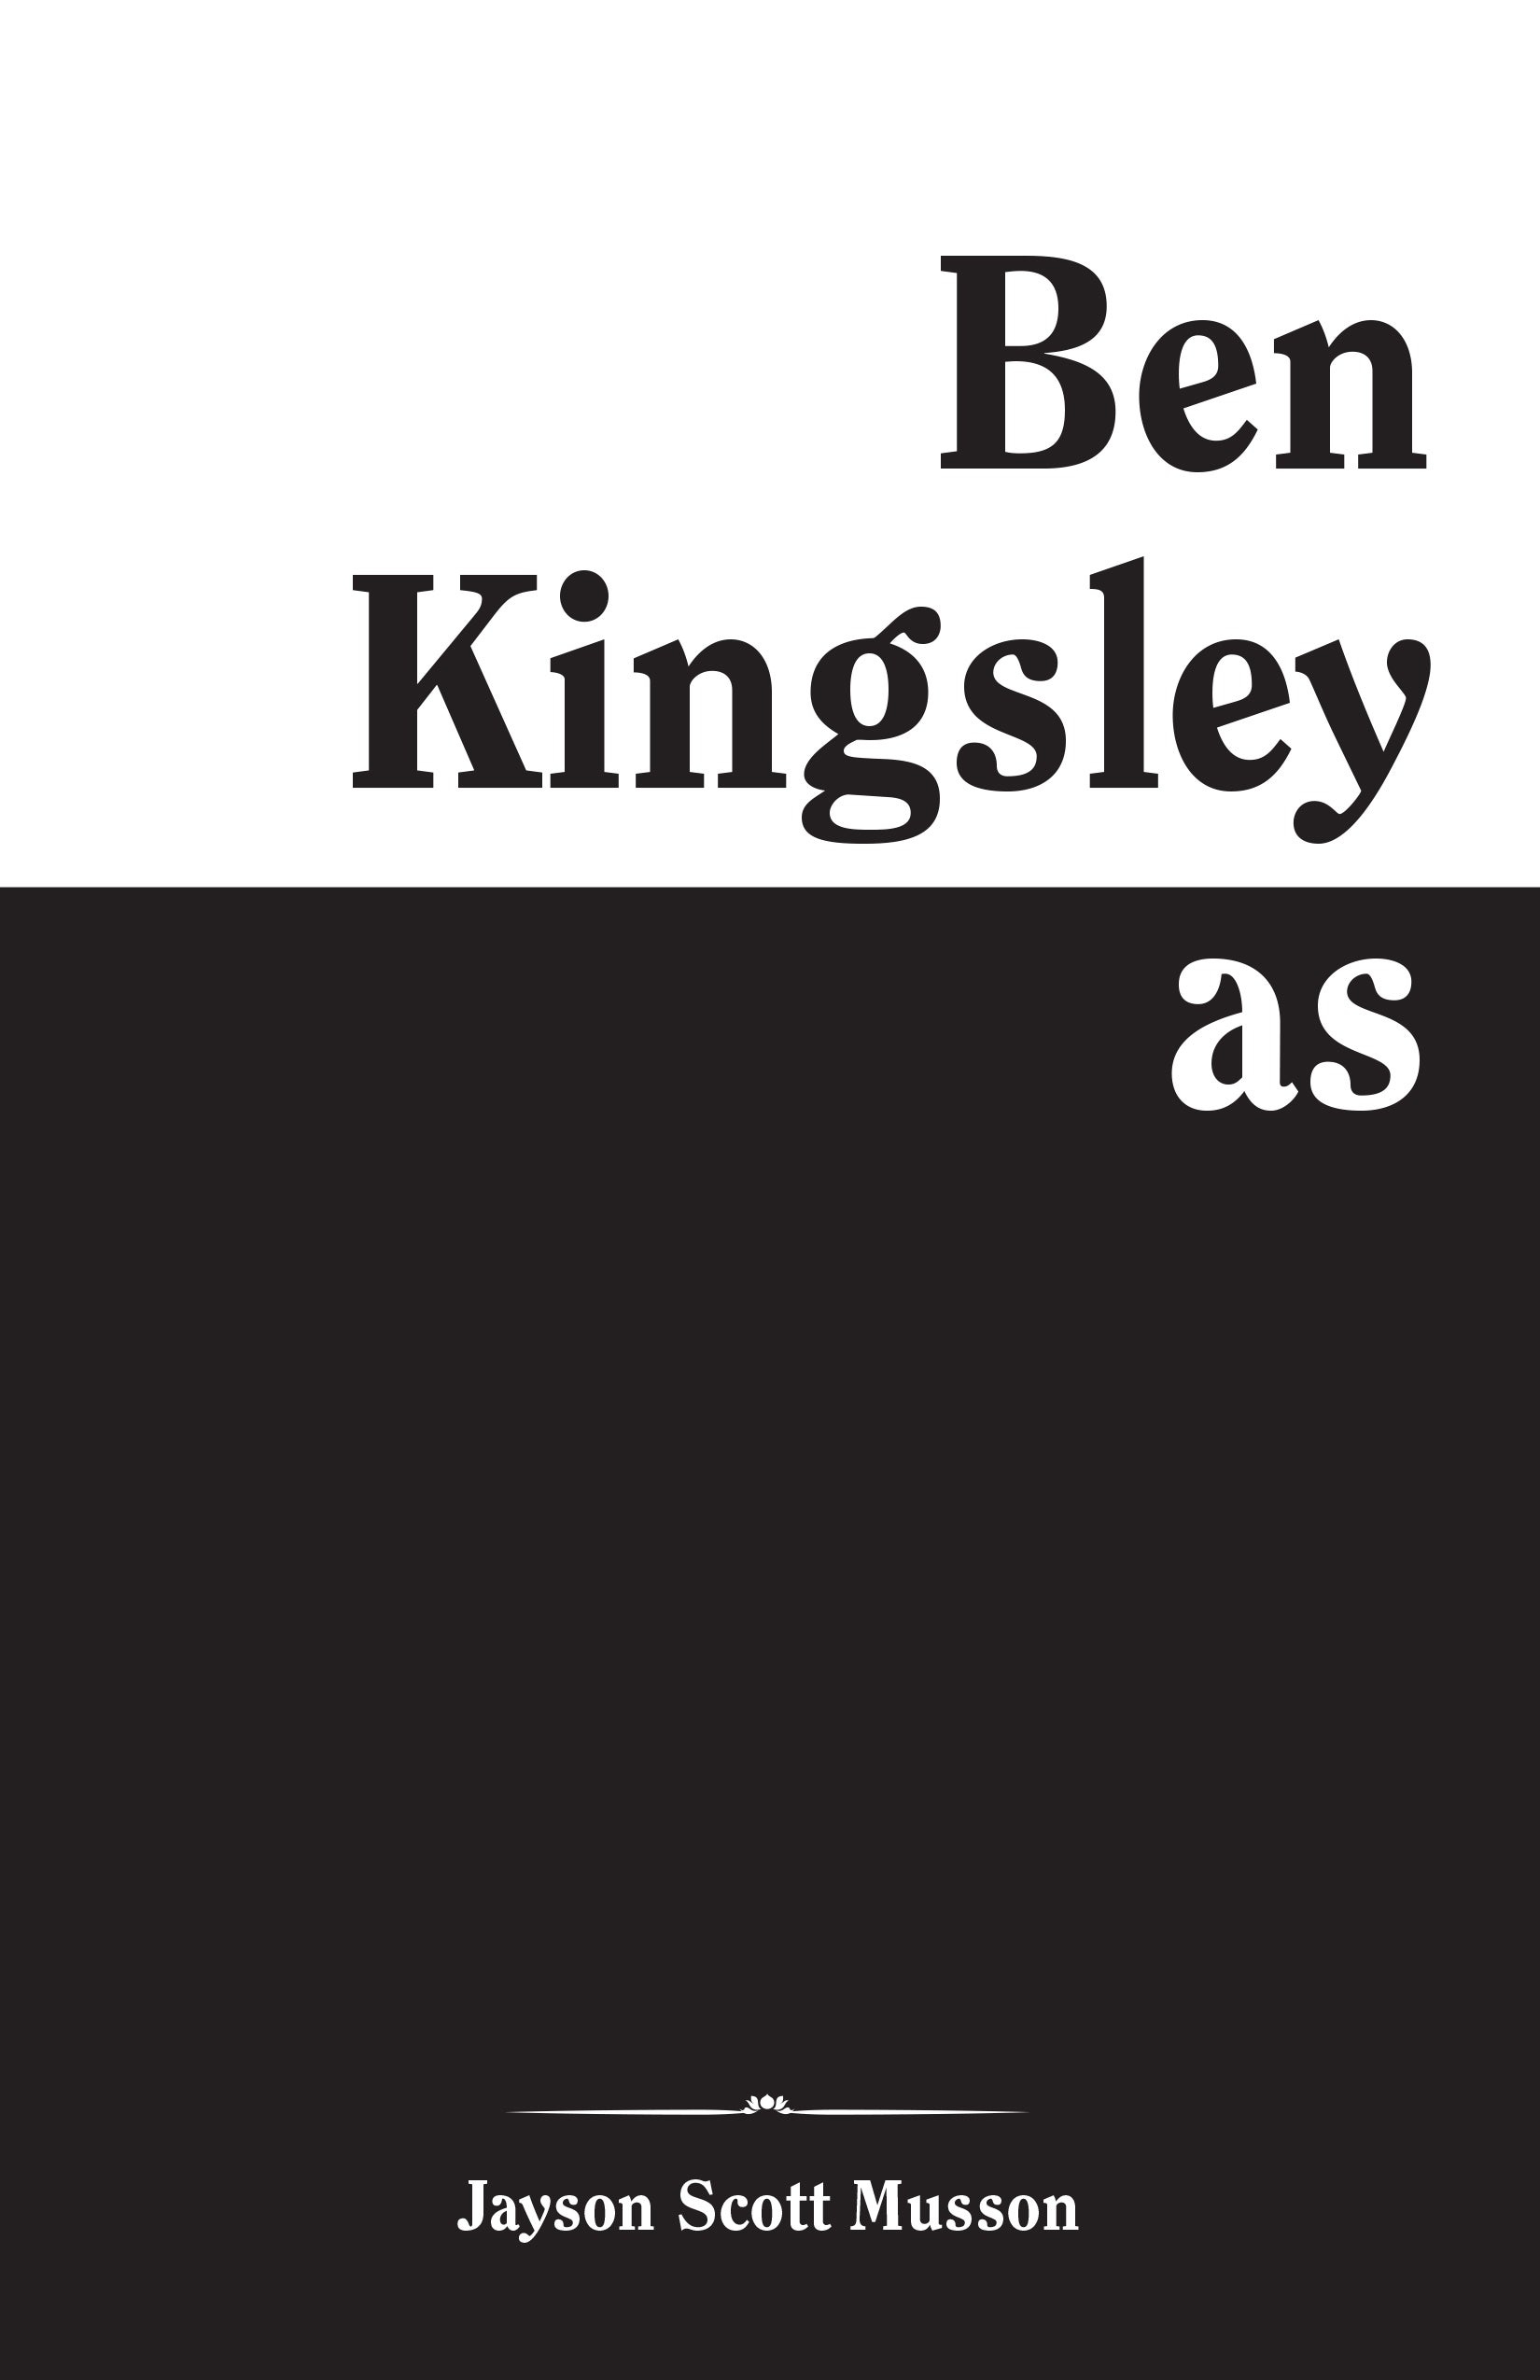 Jayson Musson: Ben Kingsley as